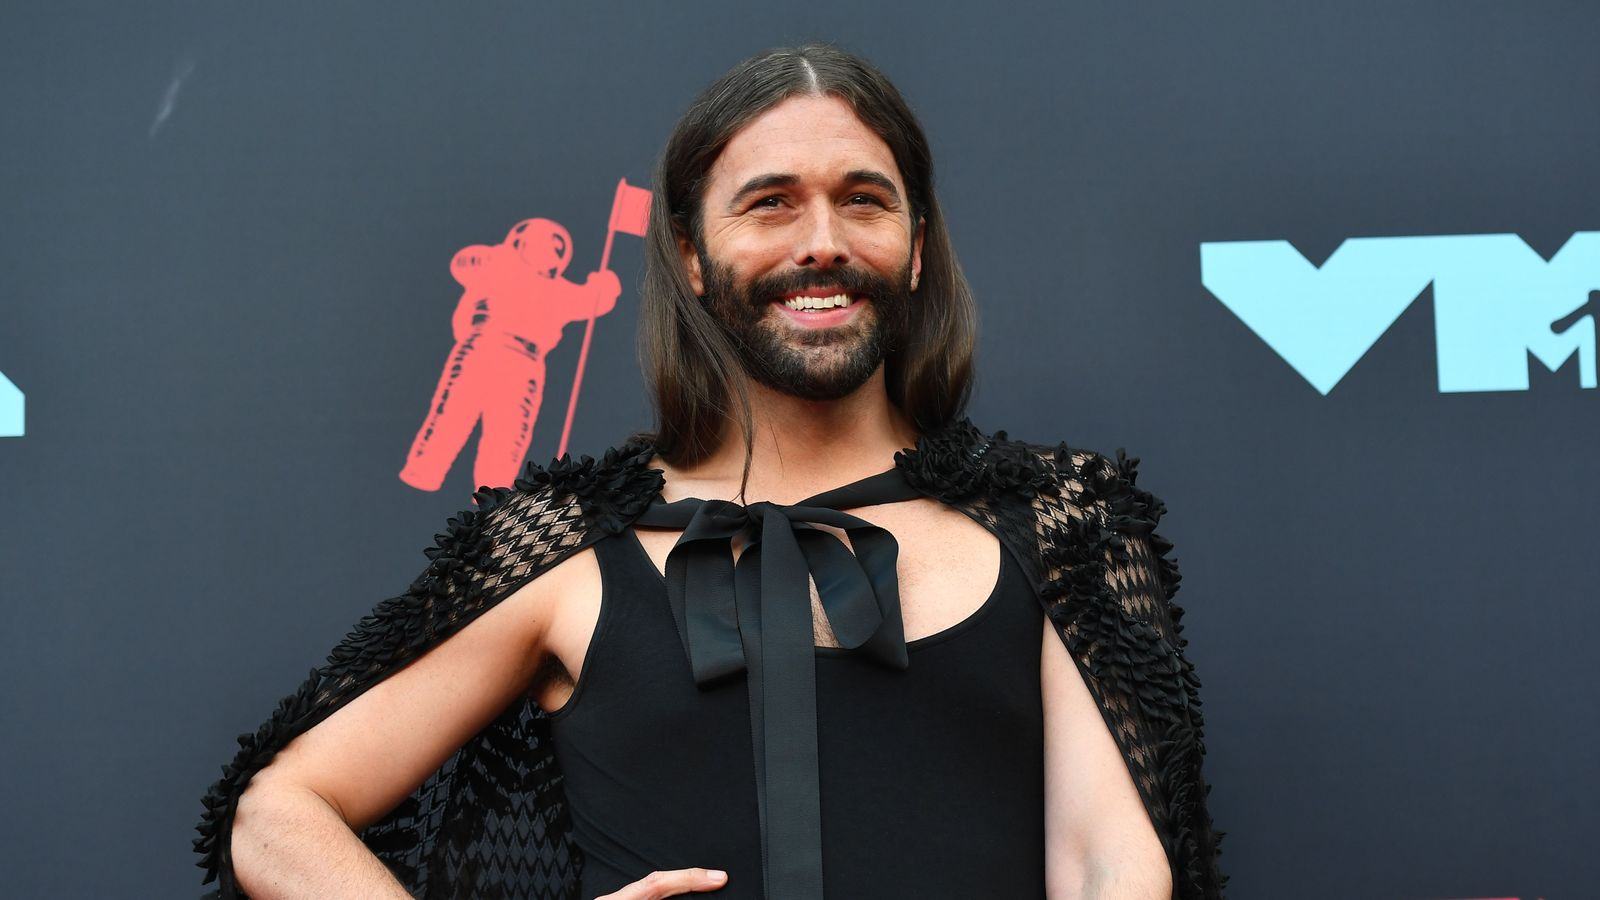 Queer Eye star Jonathan Van Ness to 'take a break' after revealing HIV diagnosis 1